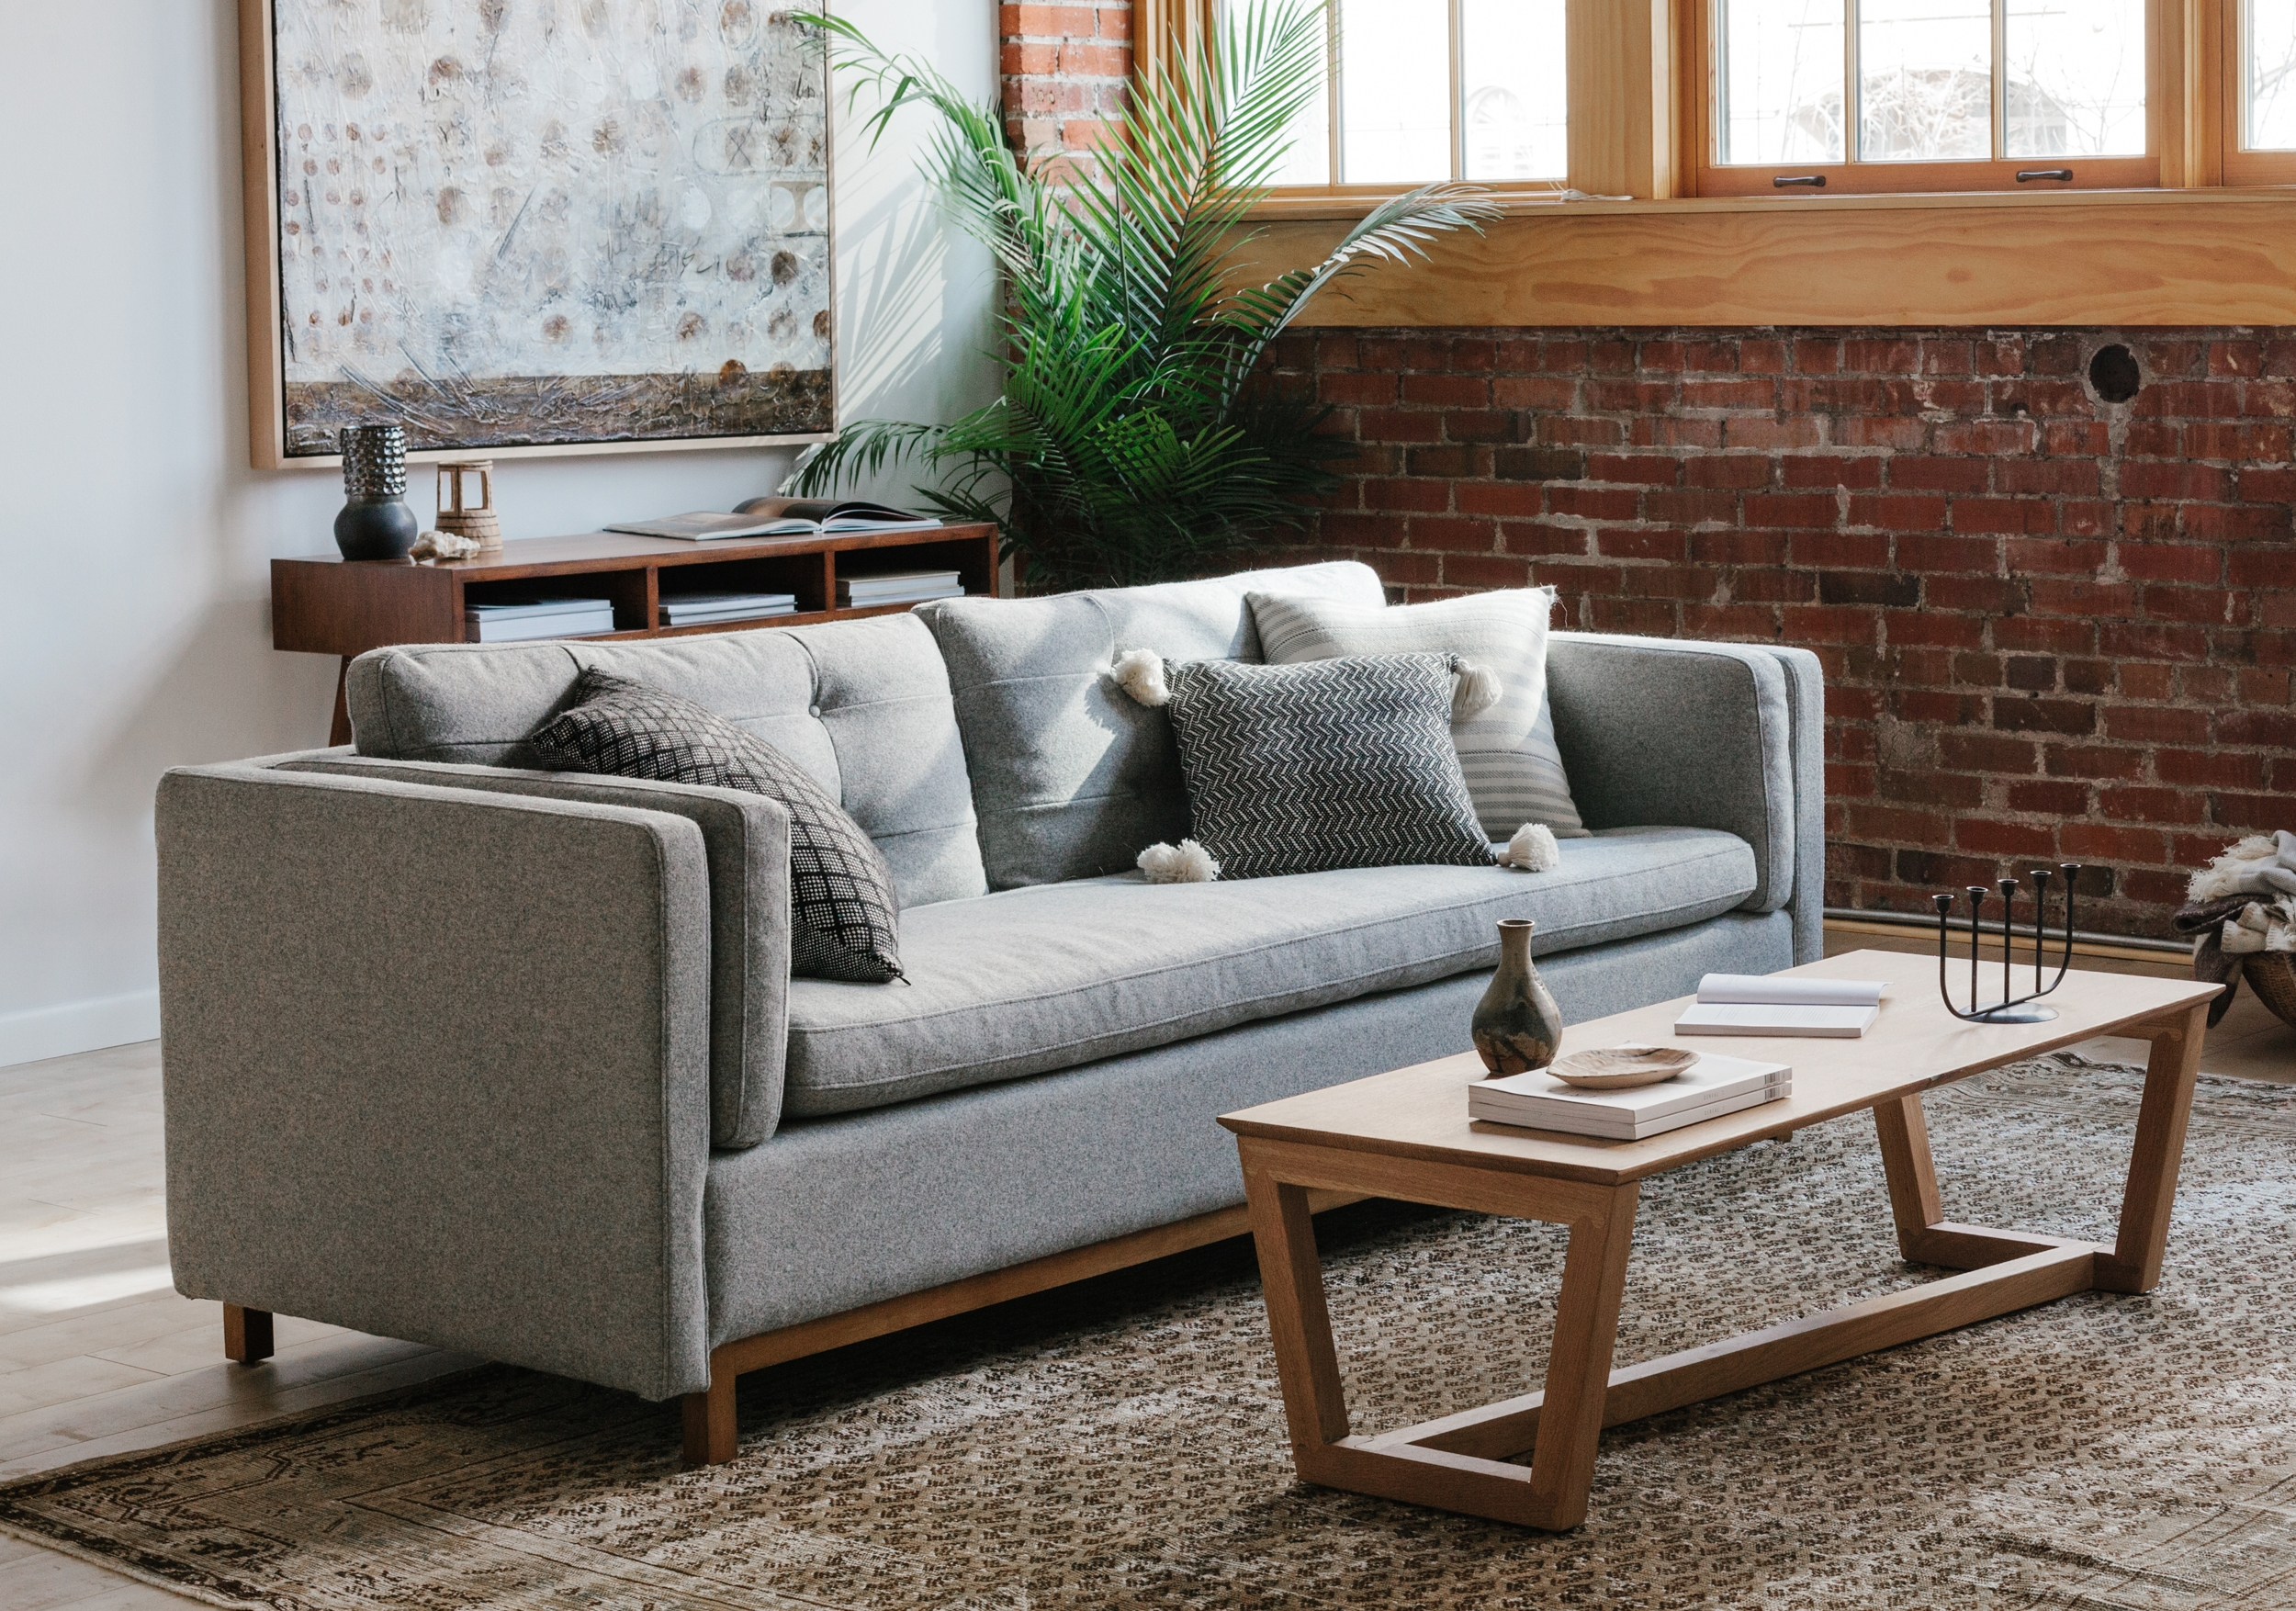 It's easier to buy furniture when you can see it in a home.  - At Guest House, we create pop-up stores inside beautiful homes with furniture, art and goods from local makers.